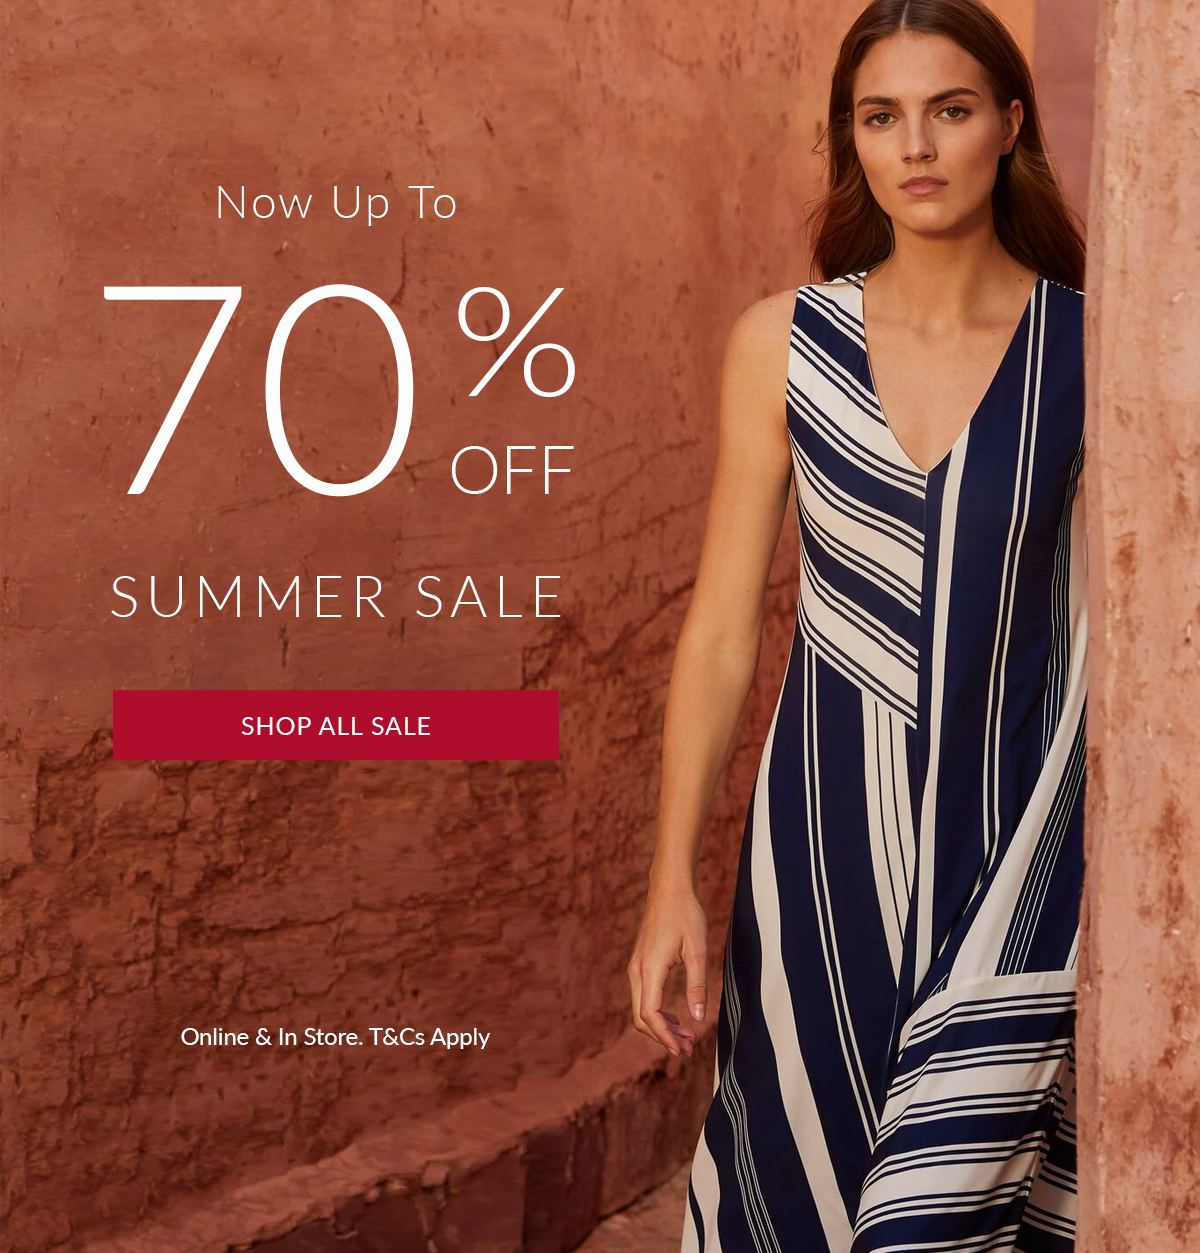 Now up to 70% off Summer Sale | Shop all Sale